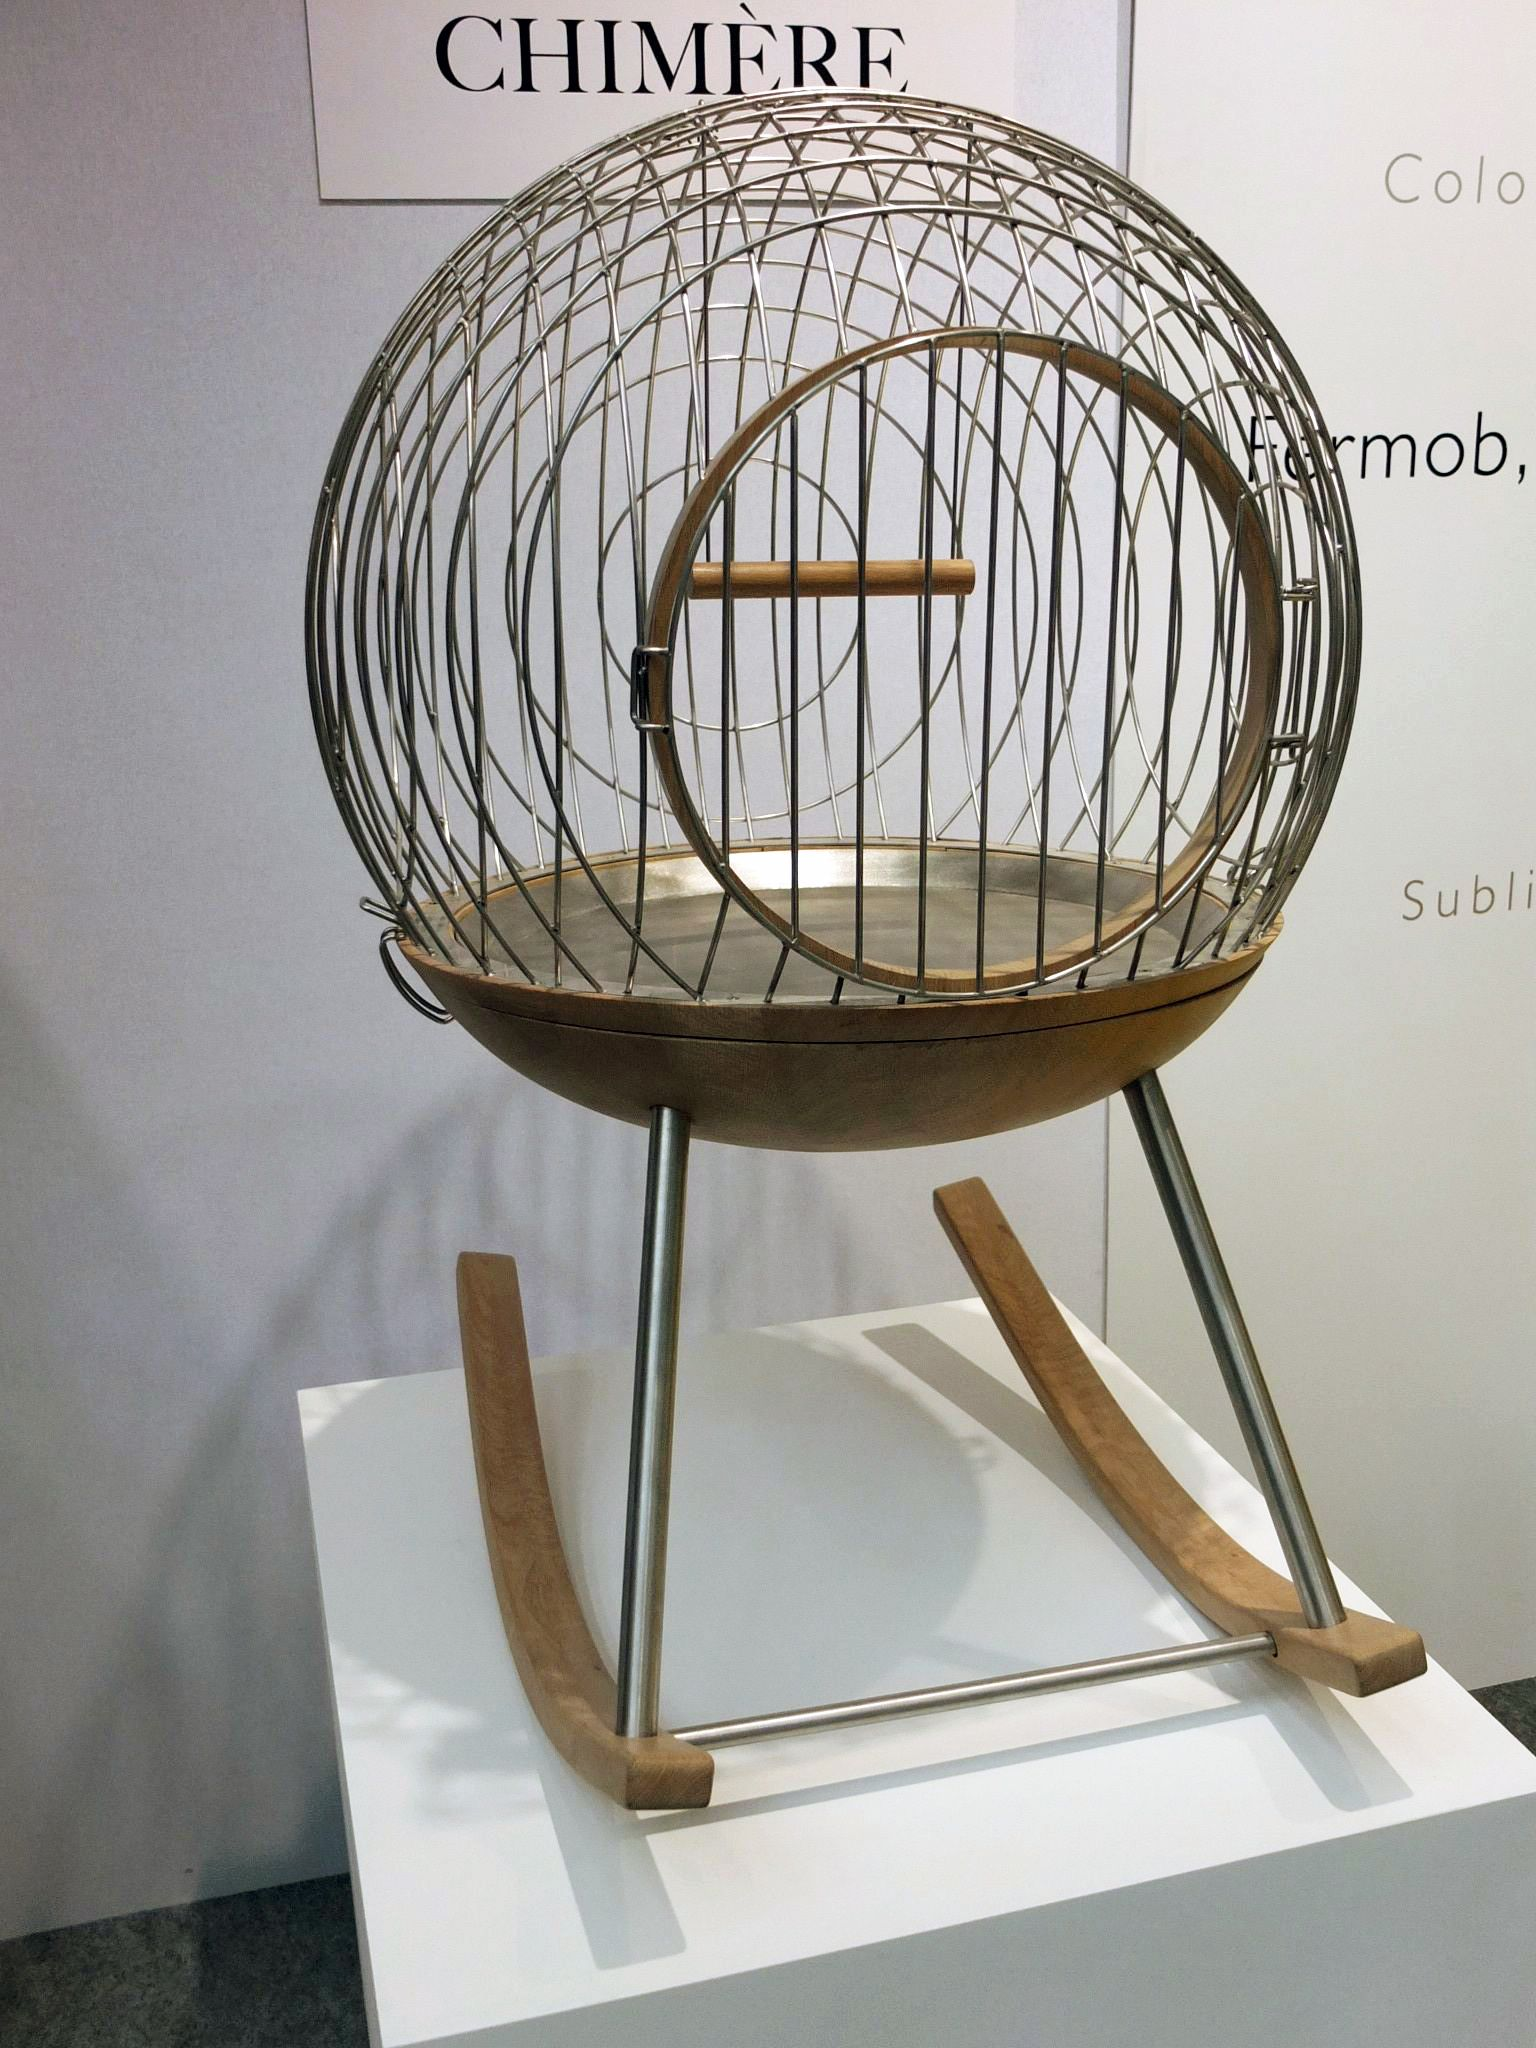 A rocking birdhouse, designed by Chimere. #salonedelmobile #milan2012